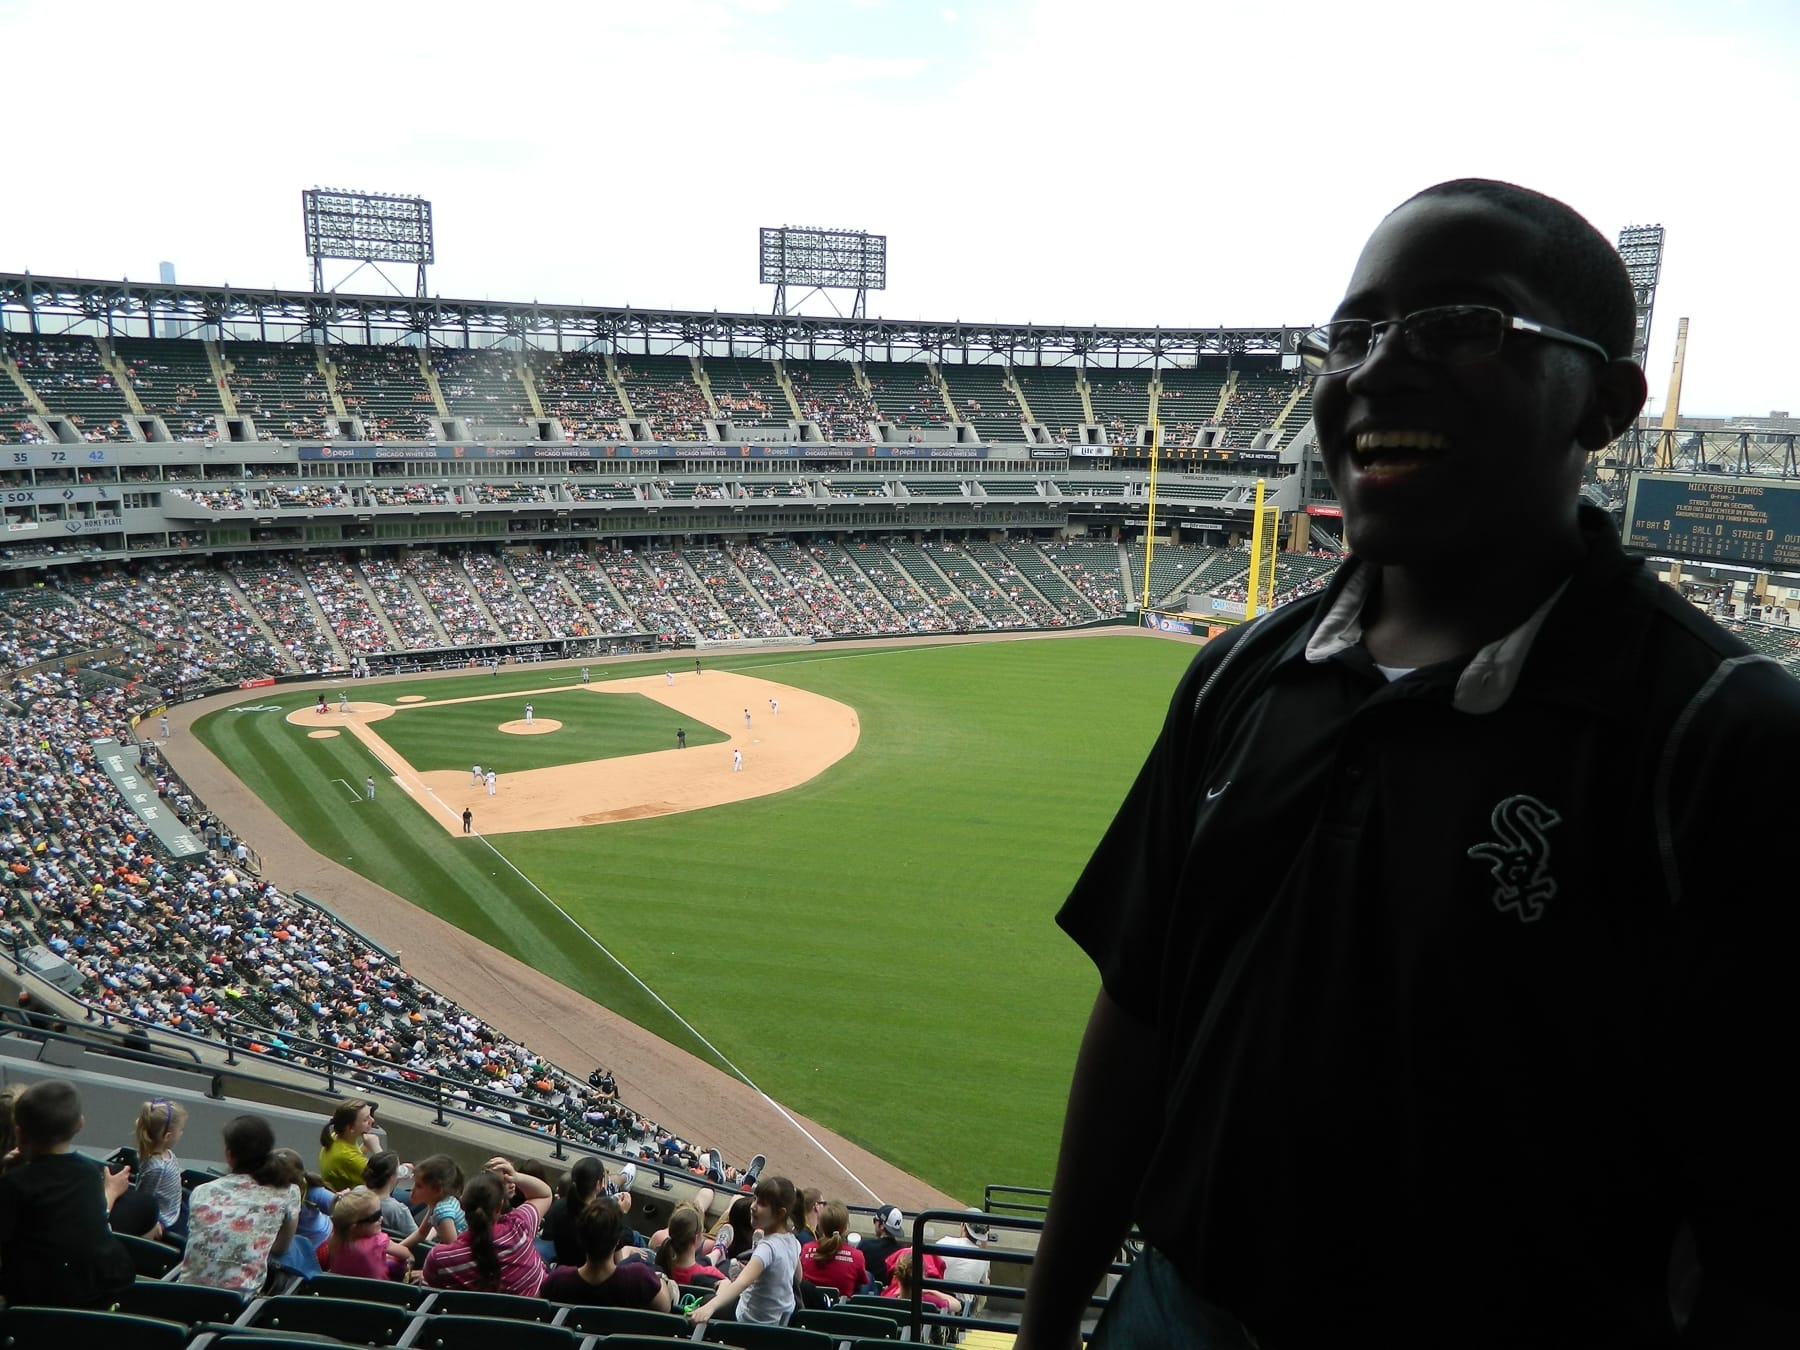 Fairhaven Baptist Academy White Sox Game 2015 (3 of 8)